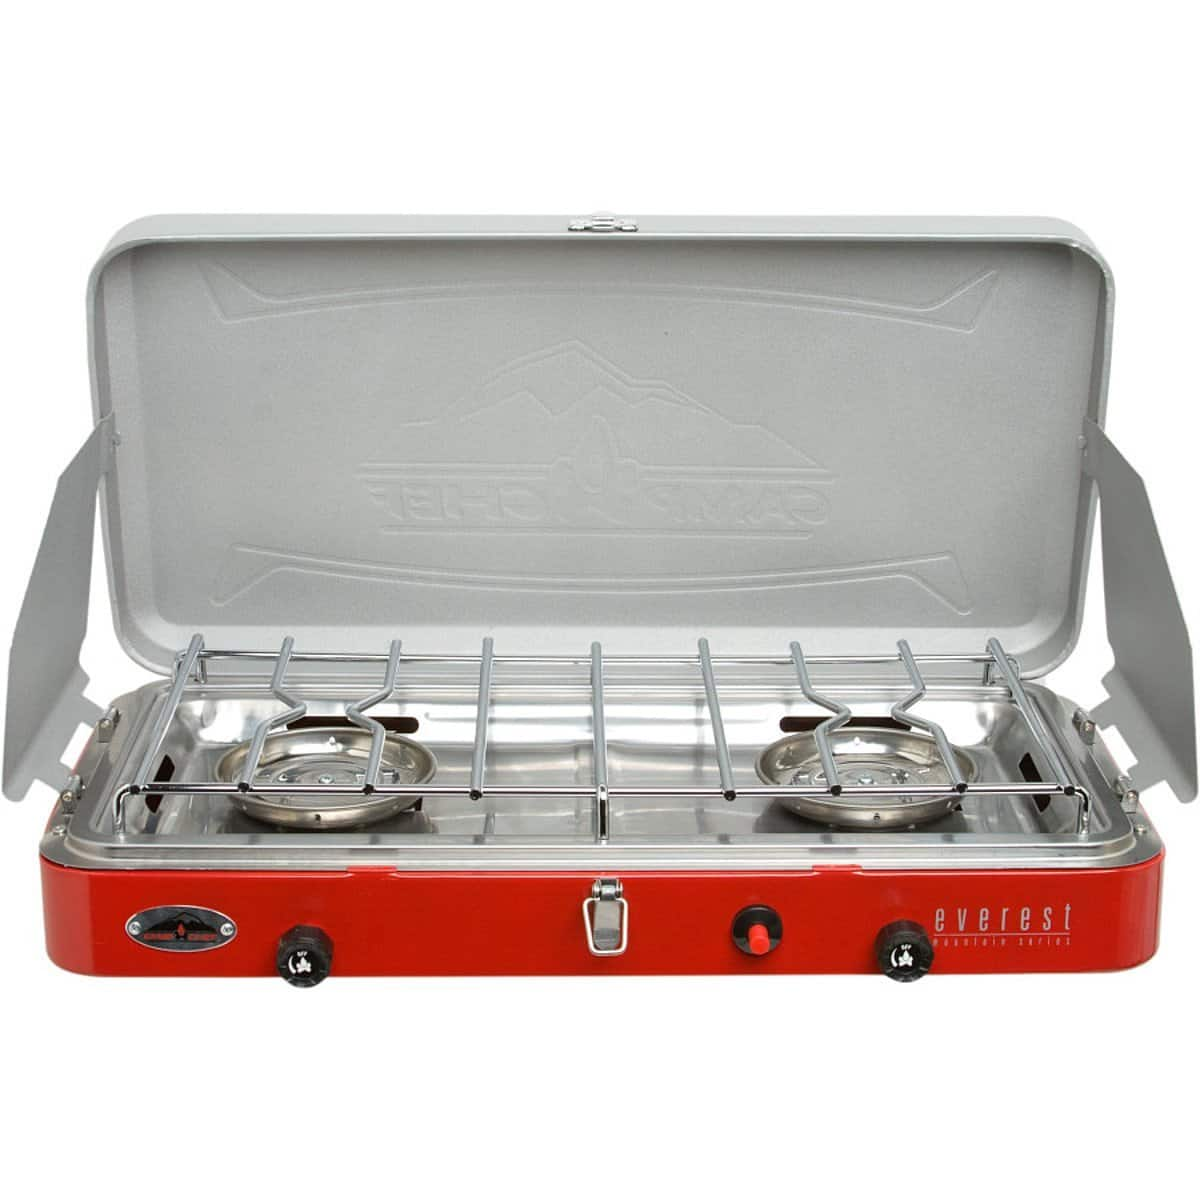 Camp Chef Everest Camp Stove $79.99 FS at REI or Amazon. $67.99 at Jet.com